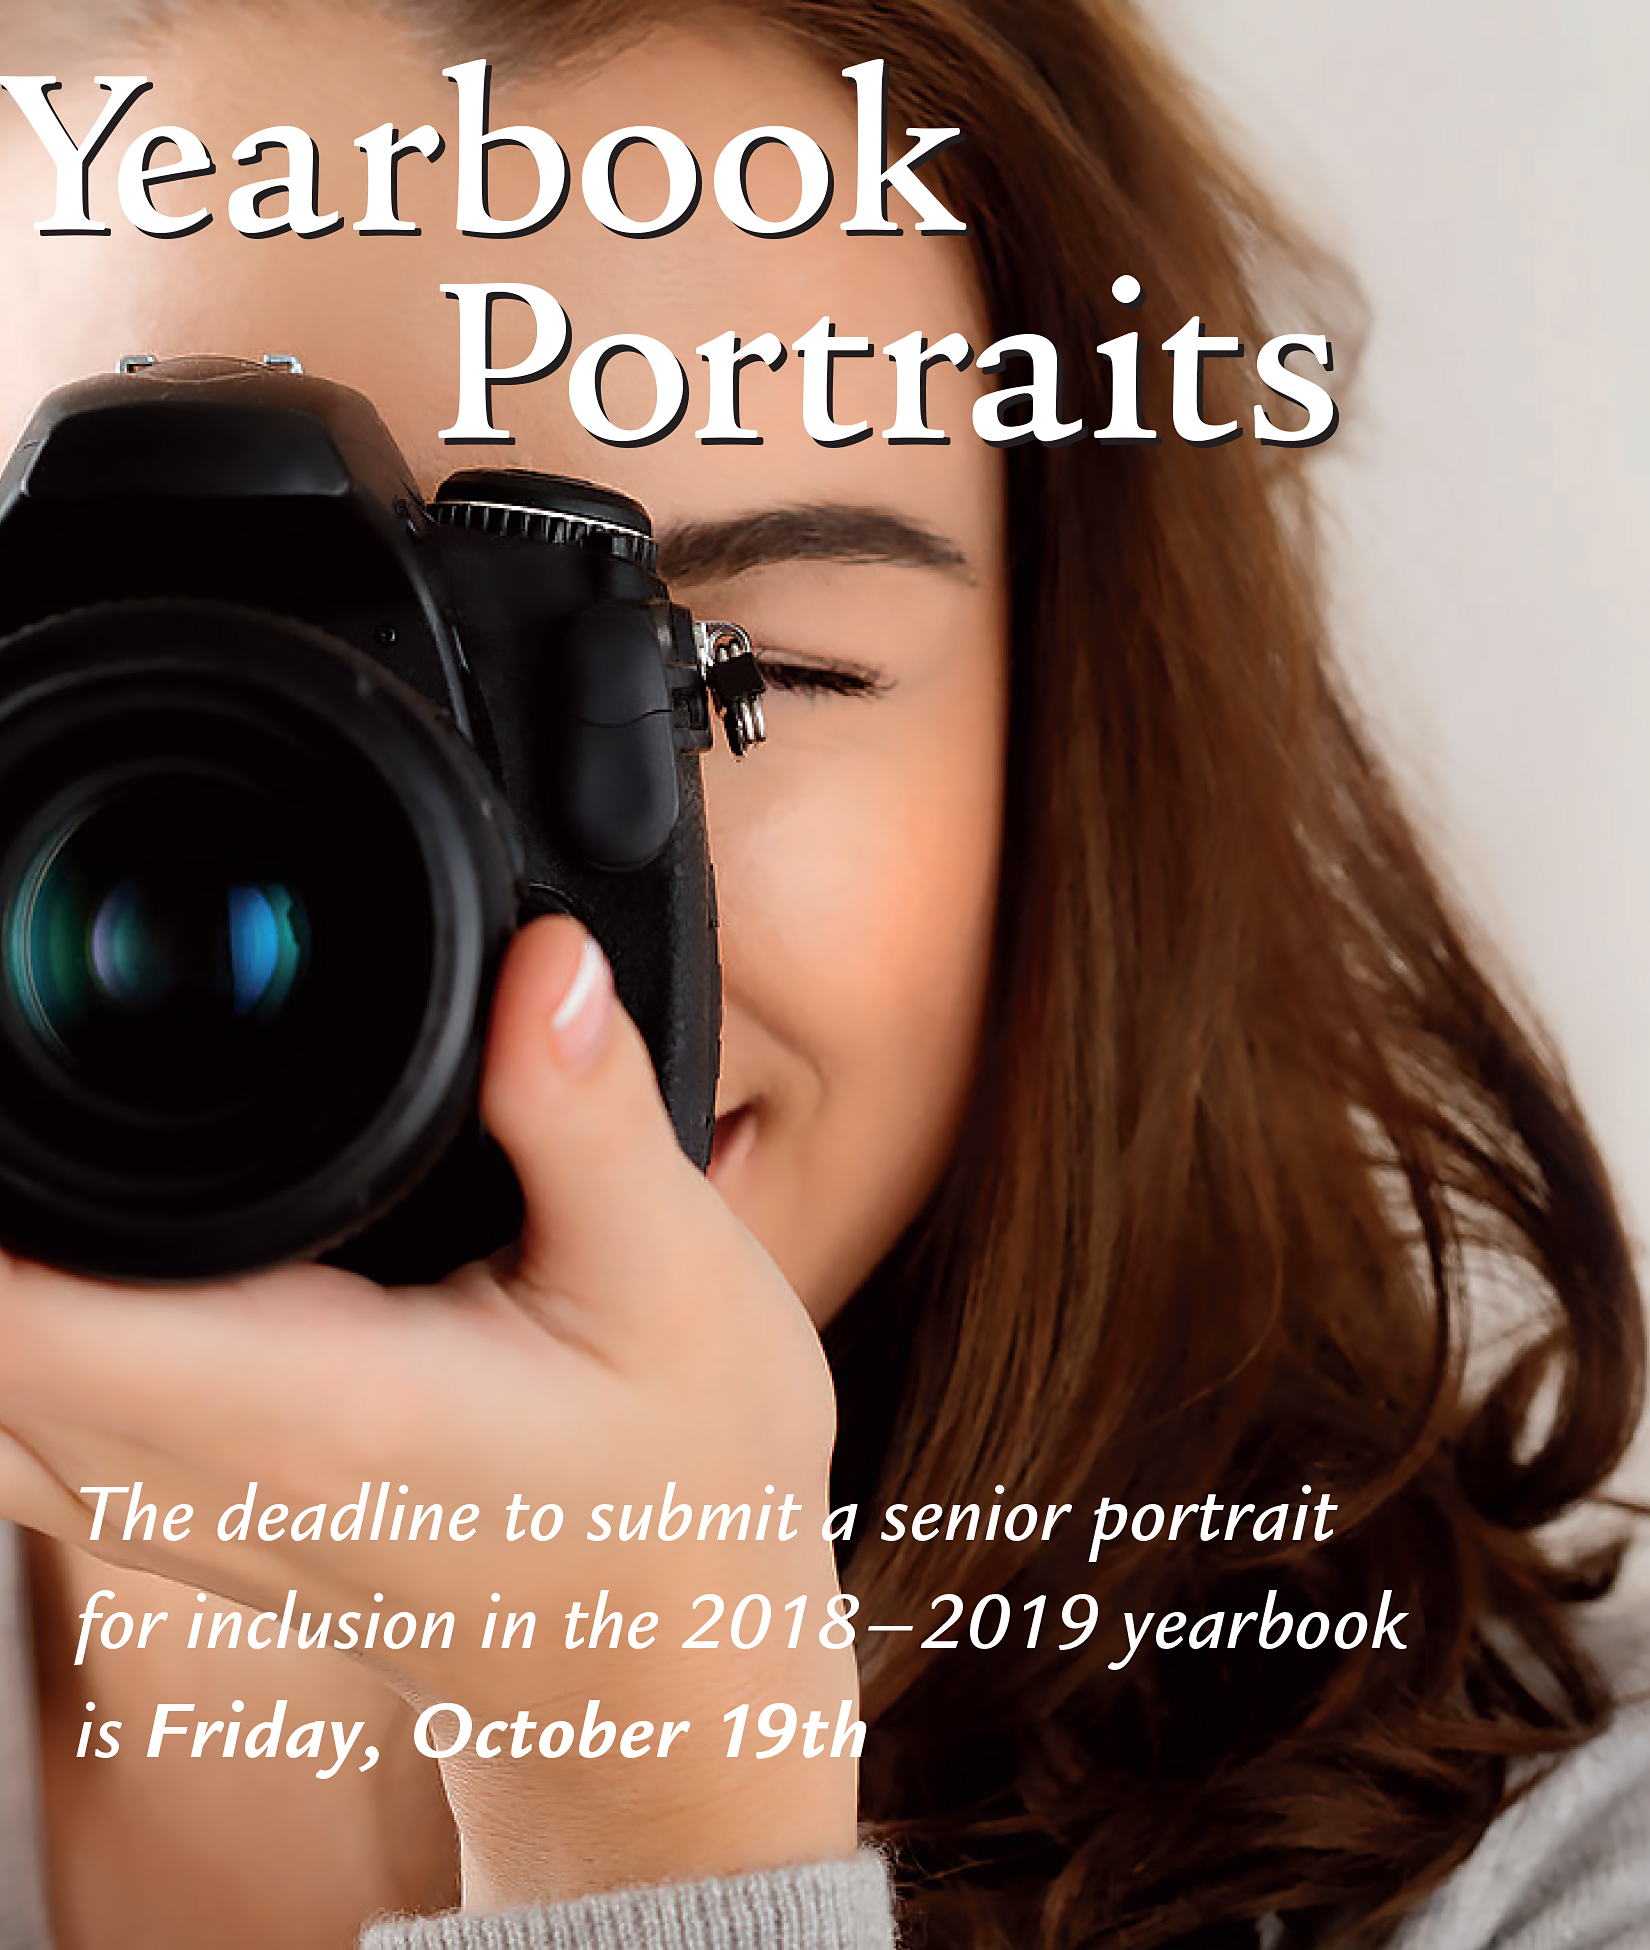 Yearbook Portraits Ad